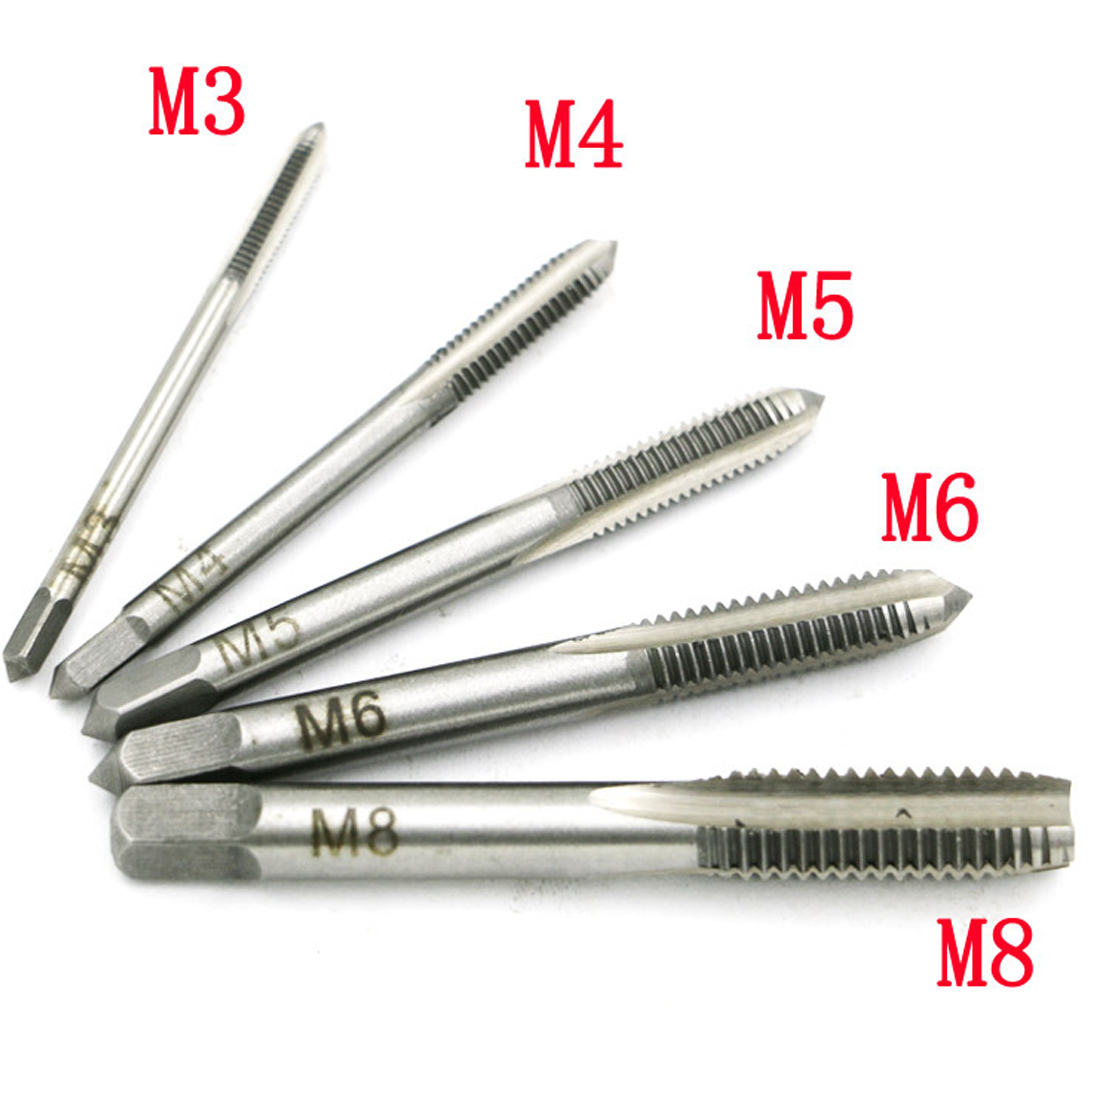 Screw Thread Hand Tap Drill 5PCS/Set M3 M4 M5 M6 M8 Ball bearing steel Tool Screw Thread Hand Tap Drill screw moving колье element47 by jv xh514264hx4419